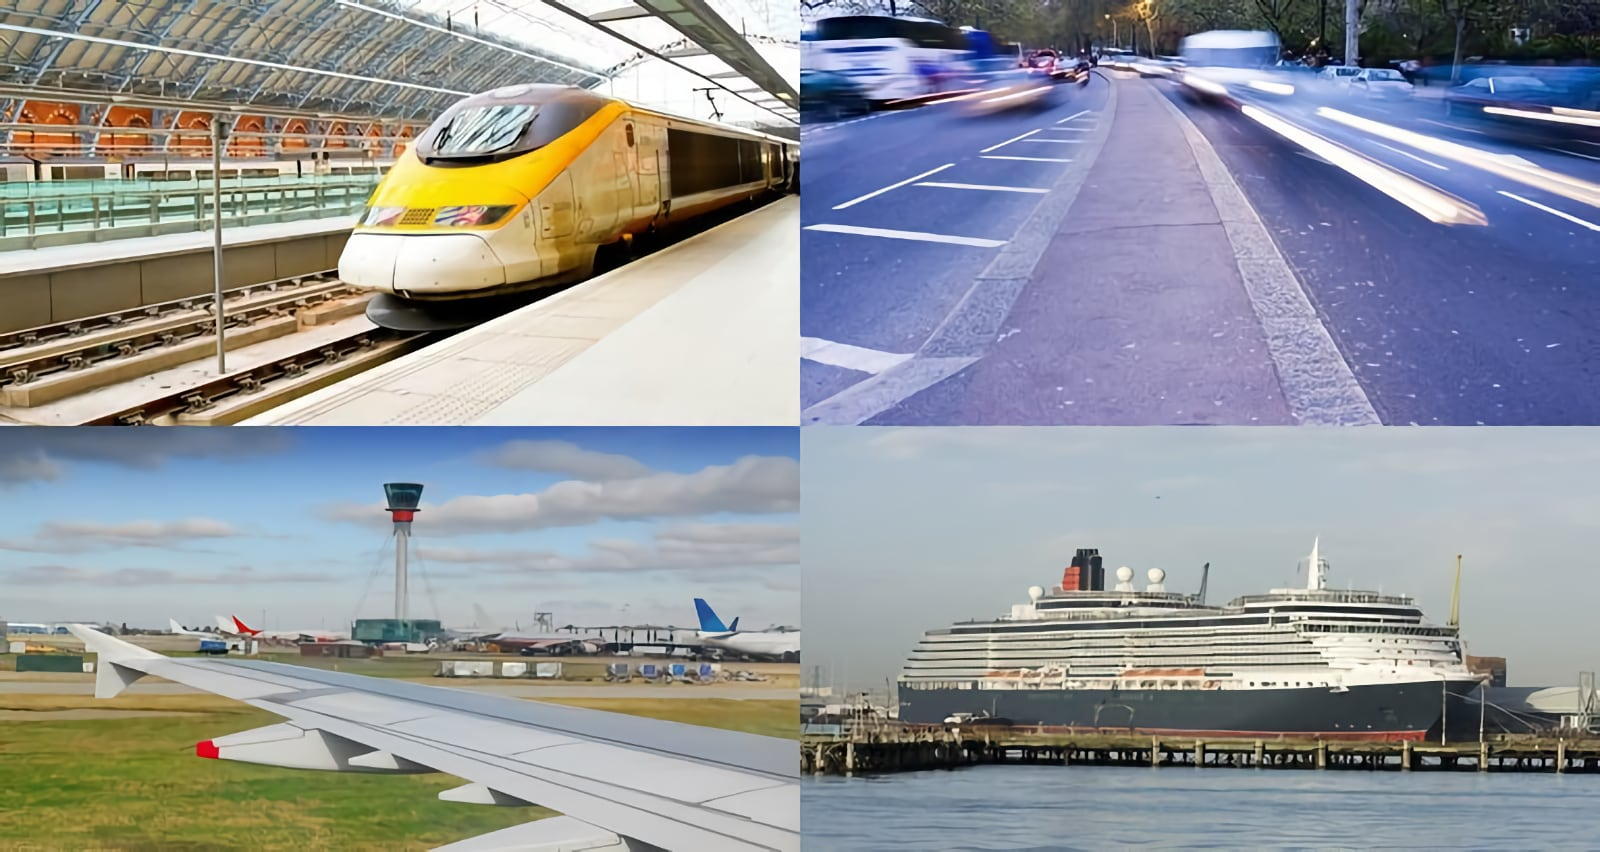 Collage of four phtos, fast train in railway station, a time-laps photo of a road showing speeding cars, a photo showing the wing of a large passenger aeroplane, and a large shipping liner in the harbour